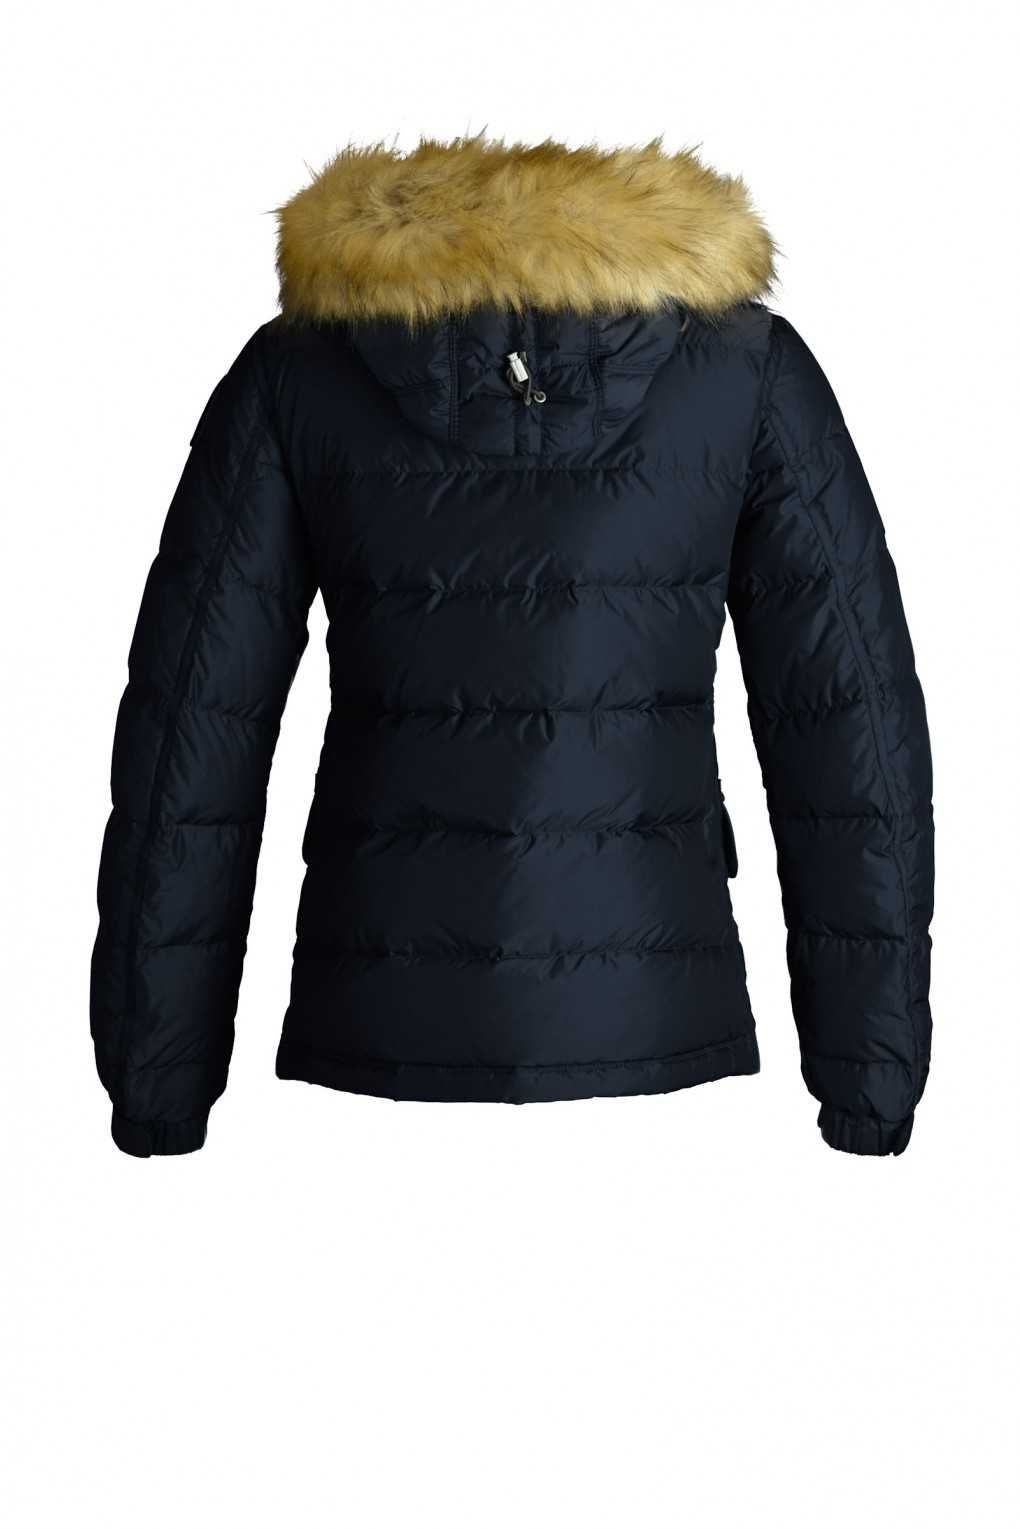 amazon parajumpers long bear